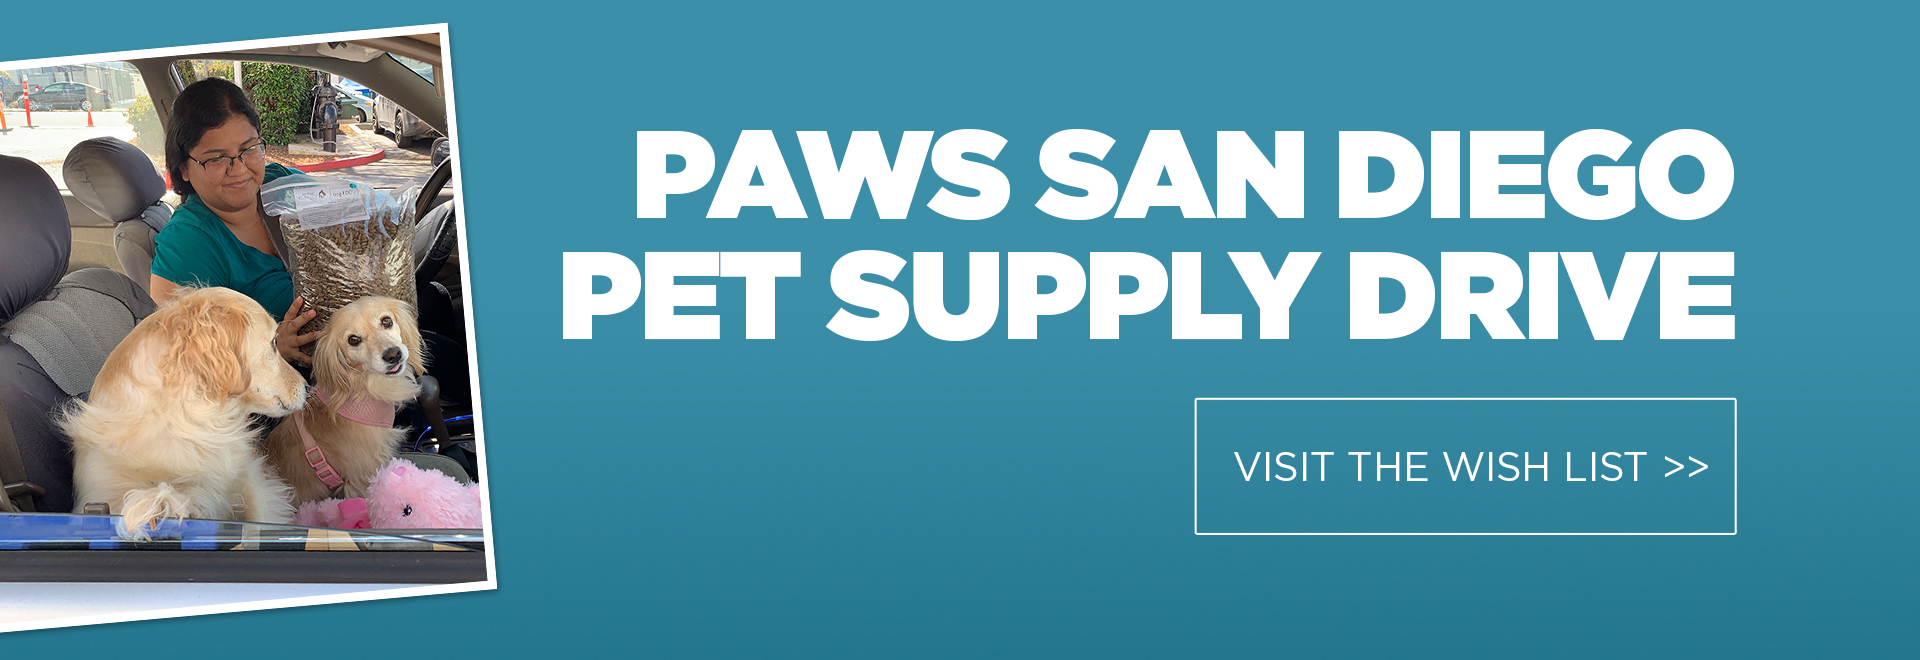 PAWS Supply Drive